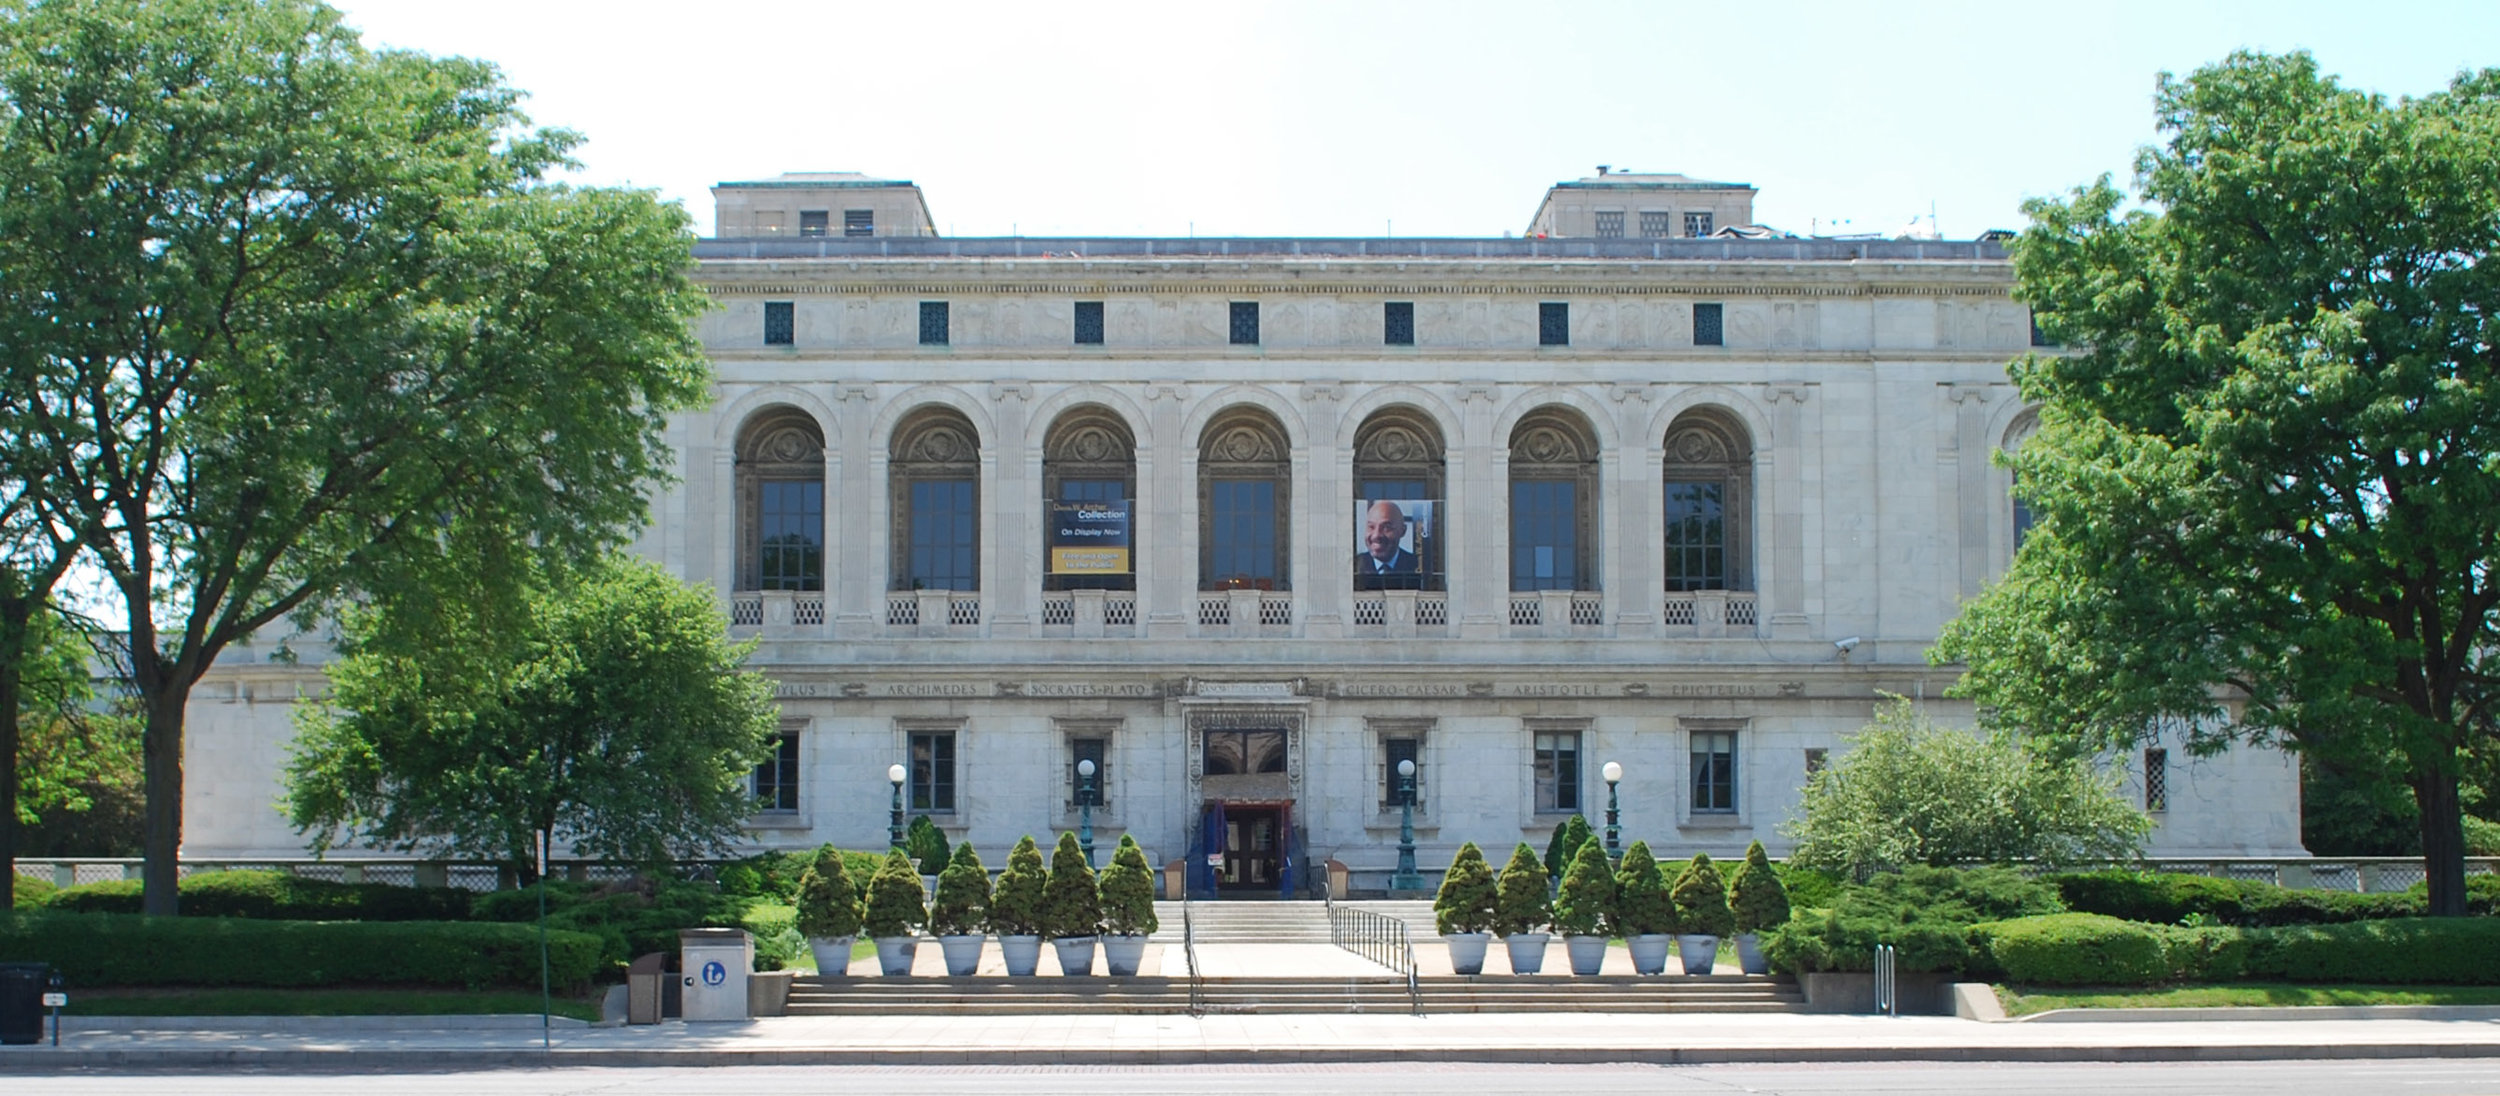 DetroitLibrary2010.jpg